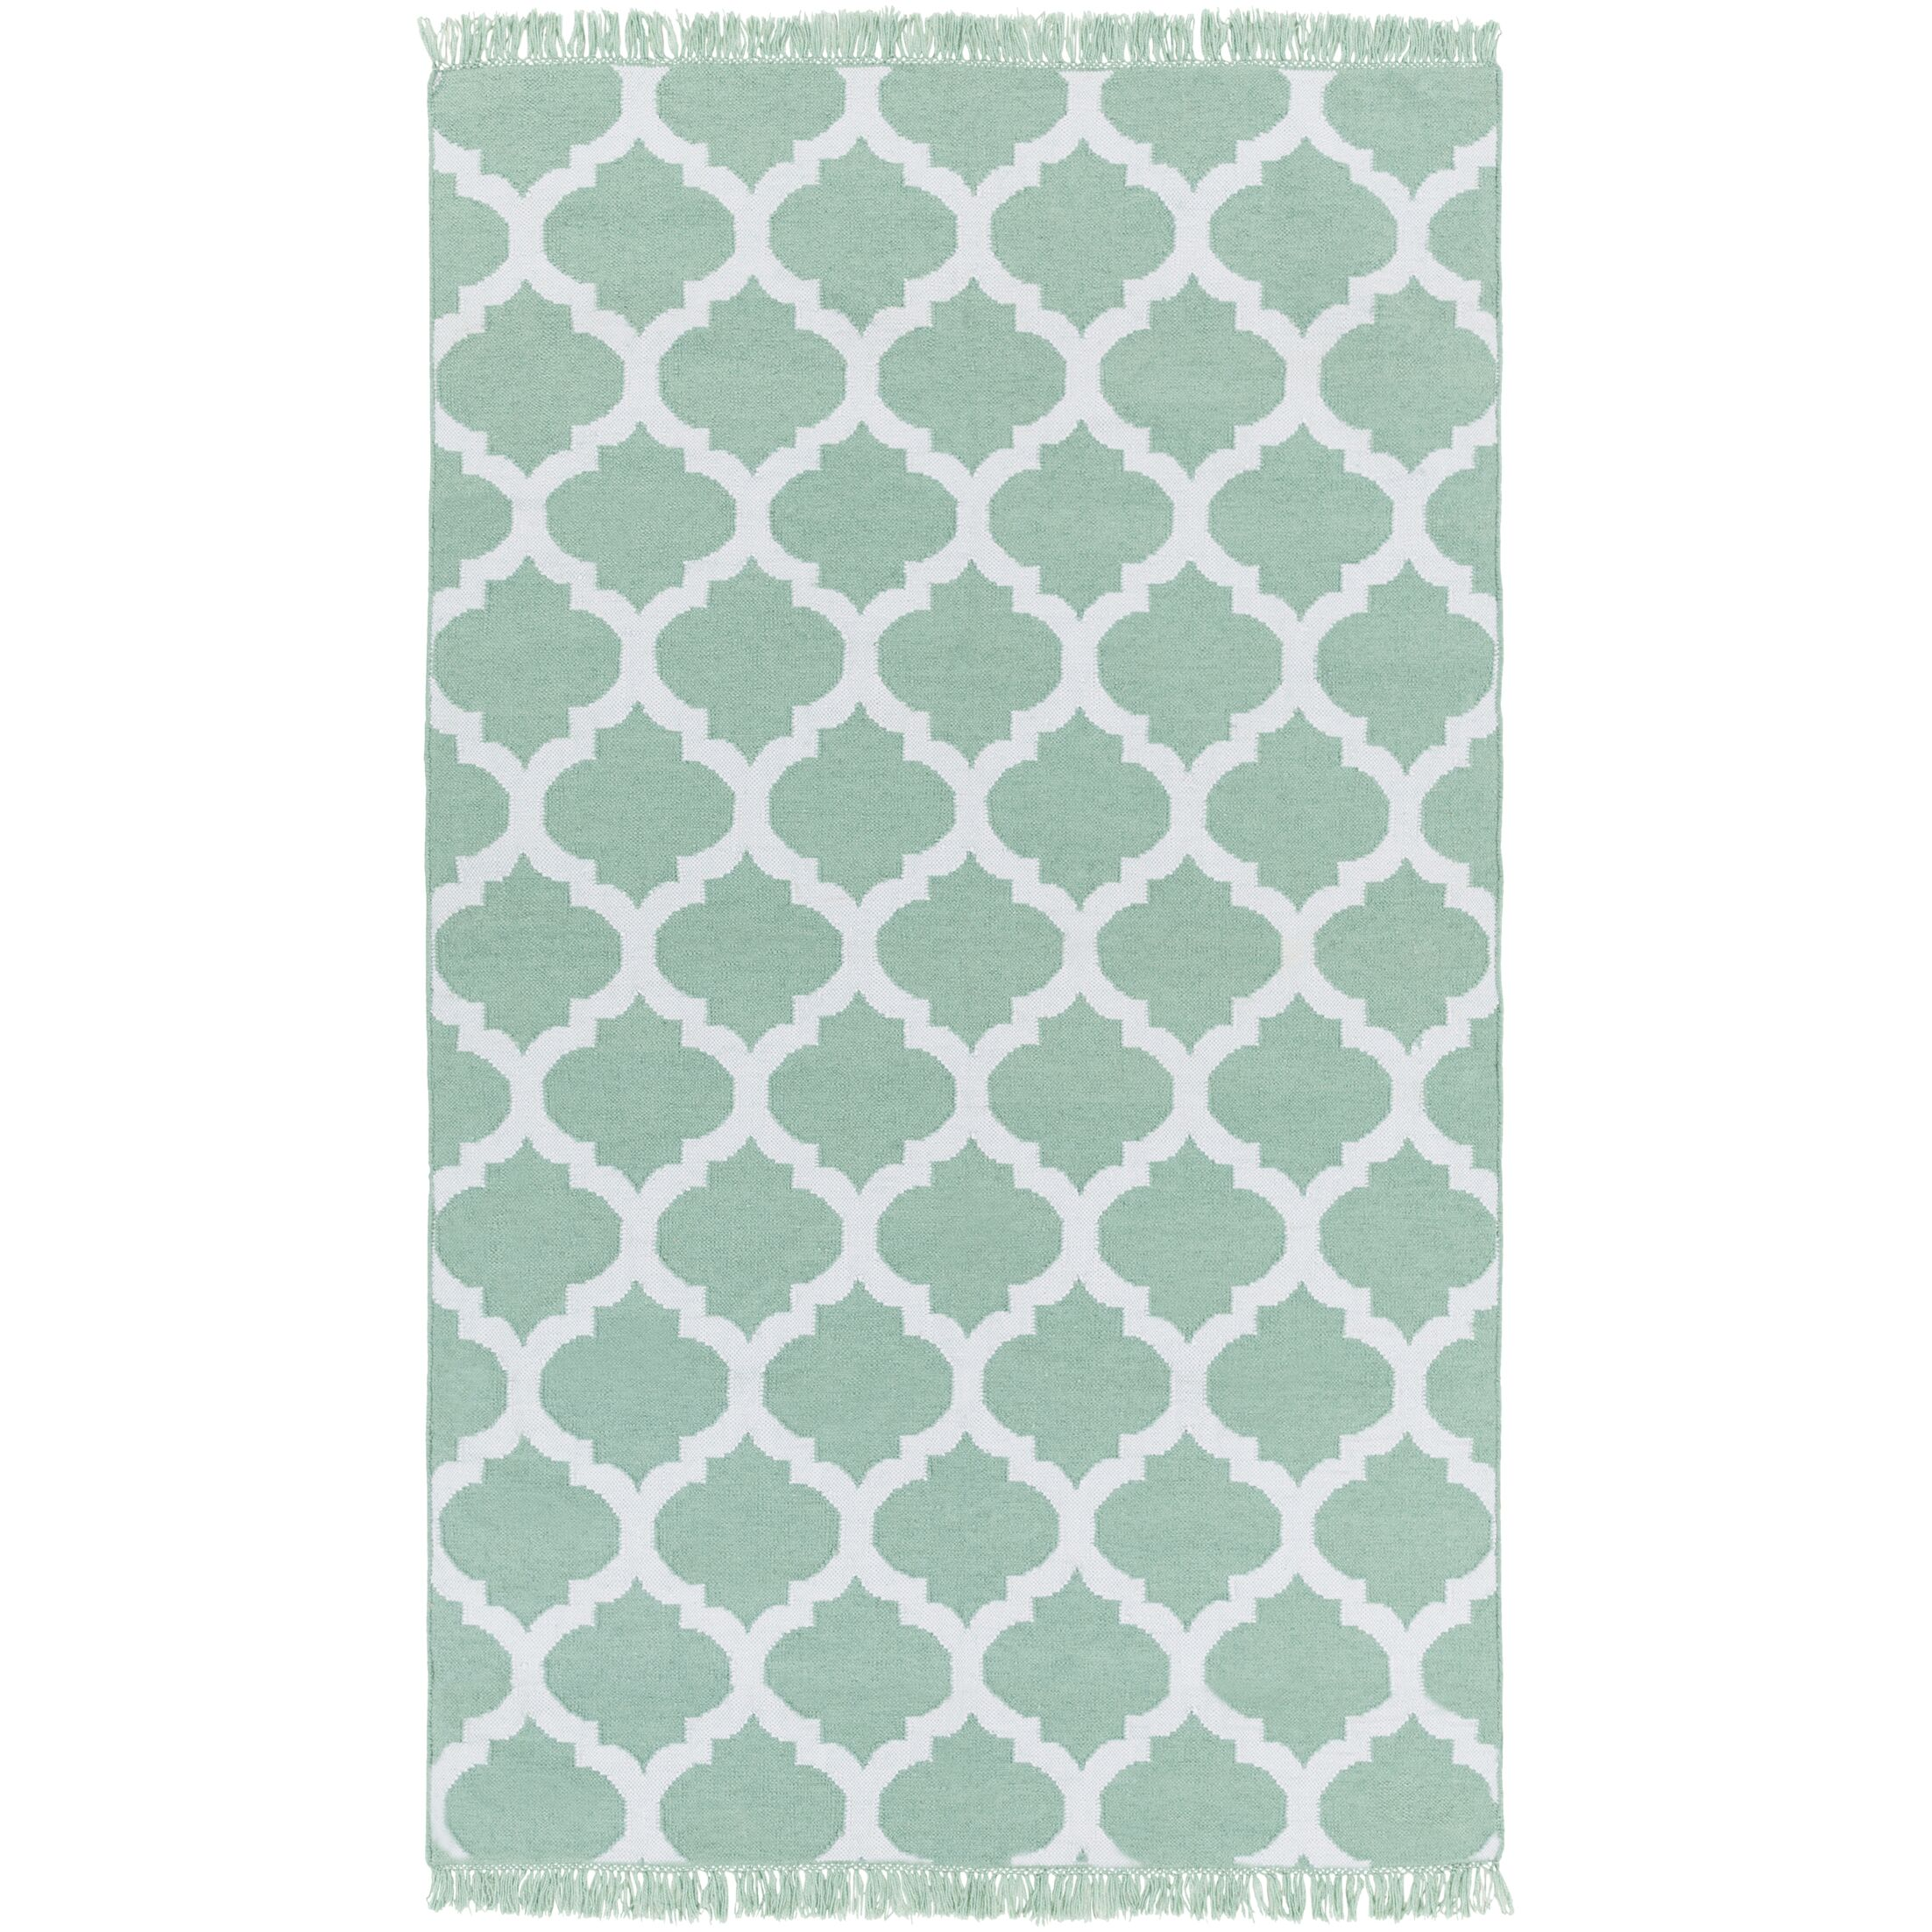 Derby Hand-Woven Green Outdoor Area Rug Rug Size: Rectangle 8' x 11'